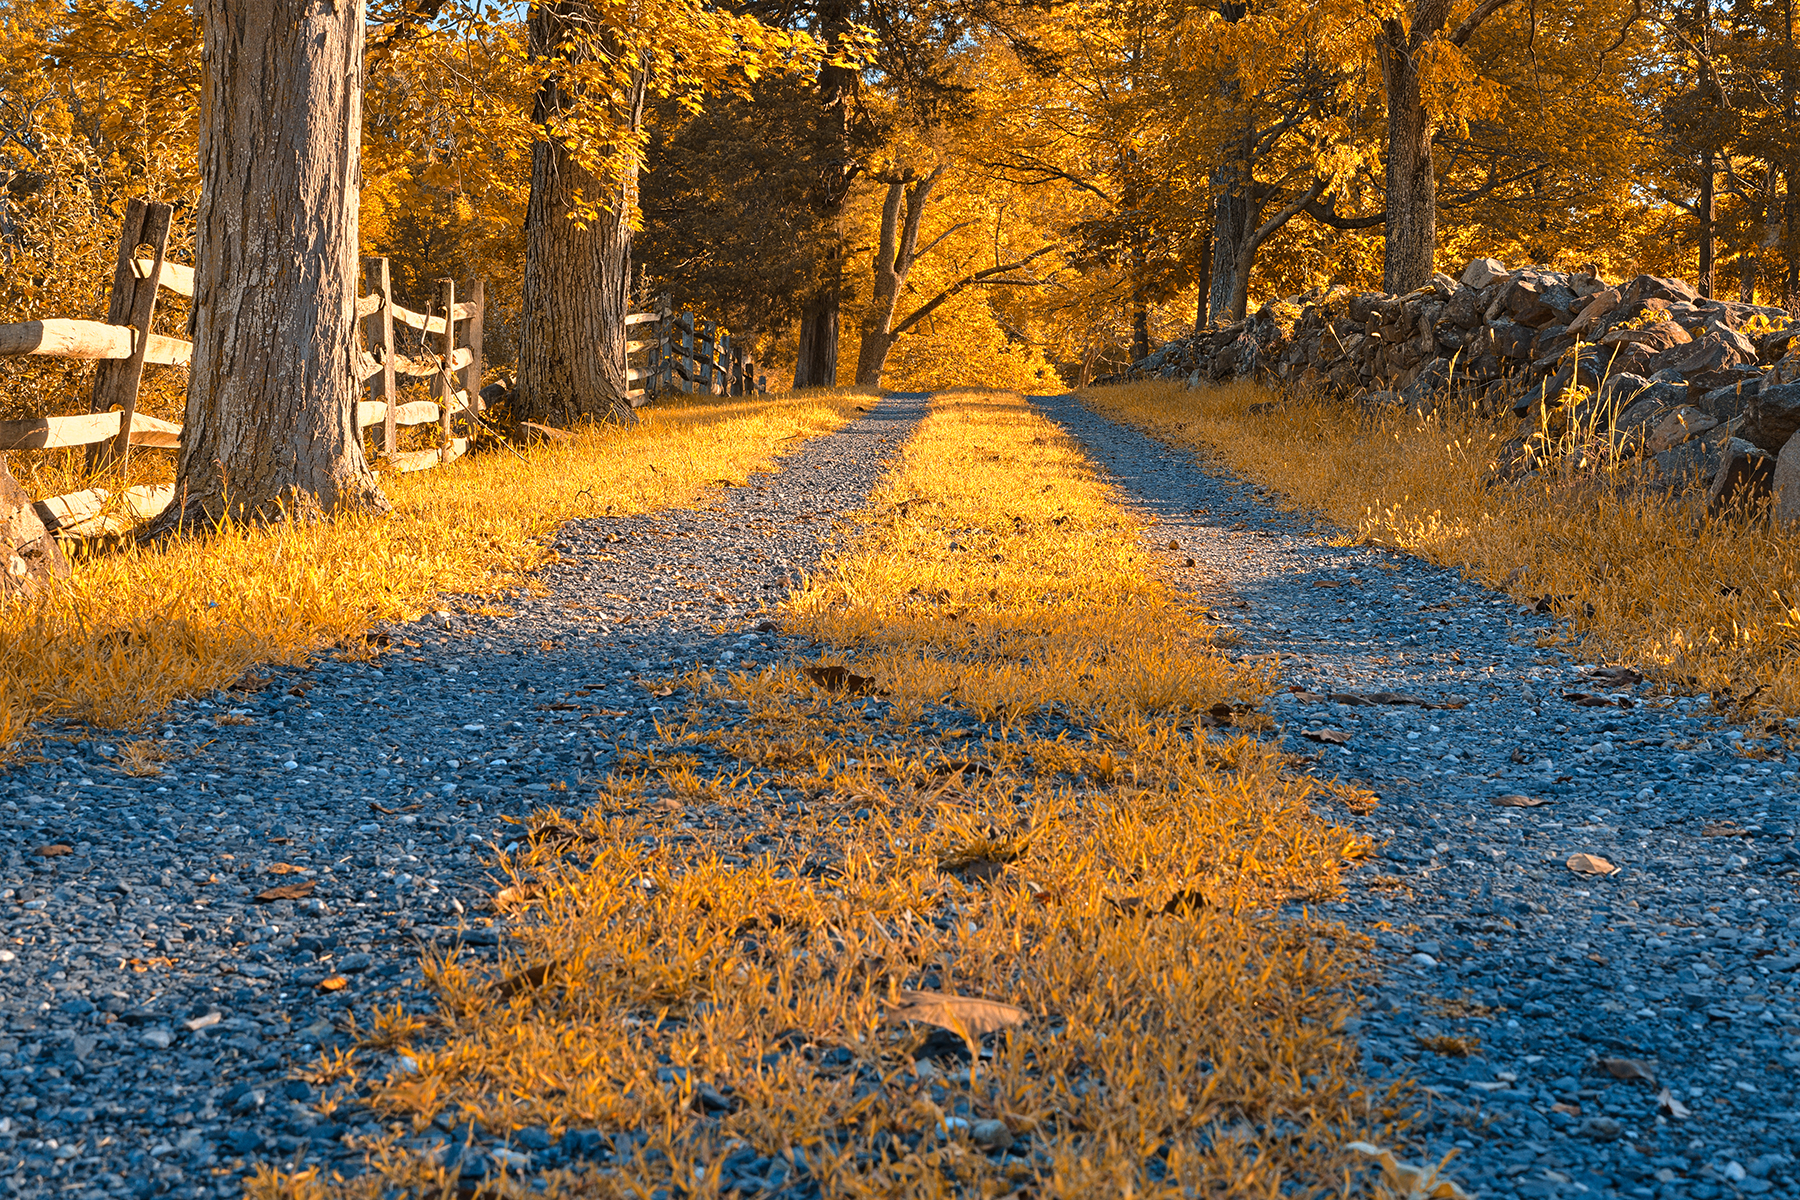 Gold gravel road - hdr photo